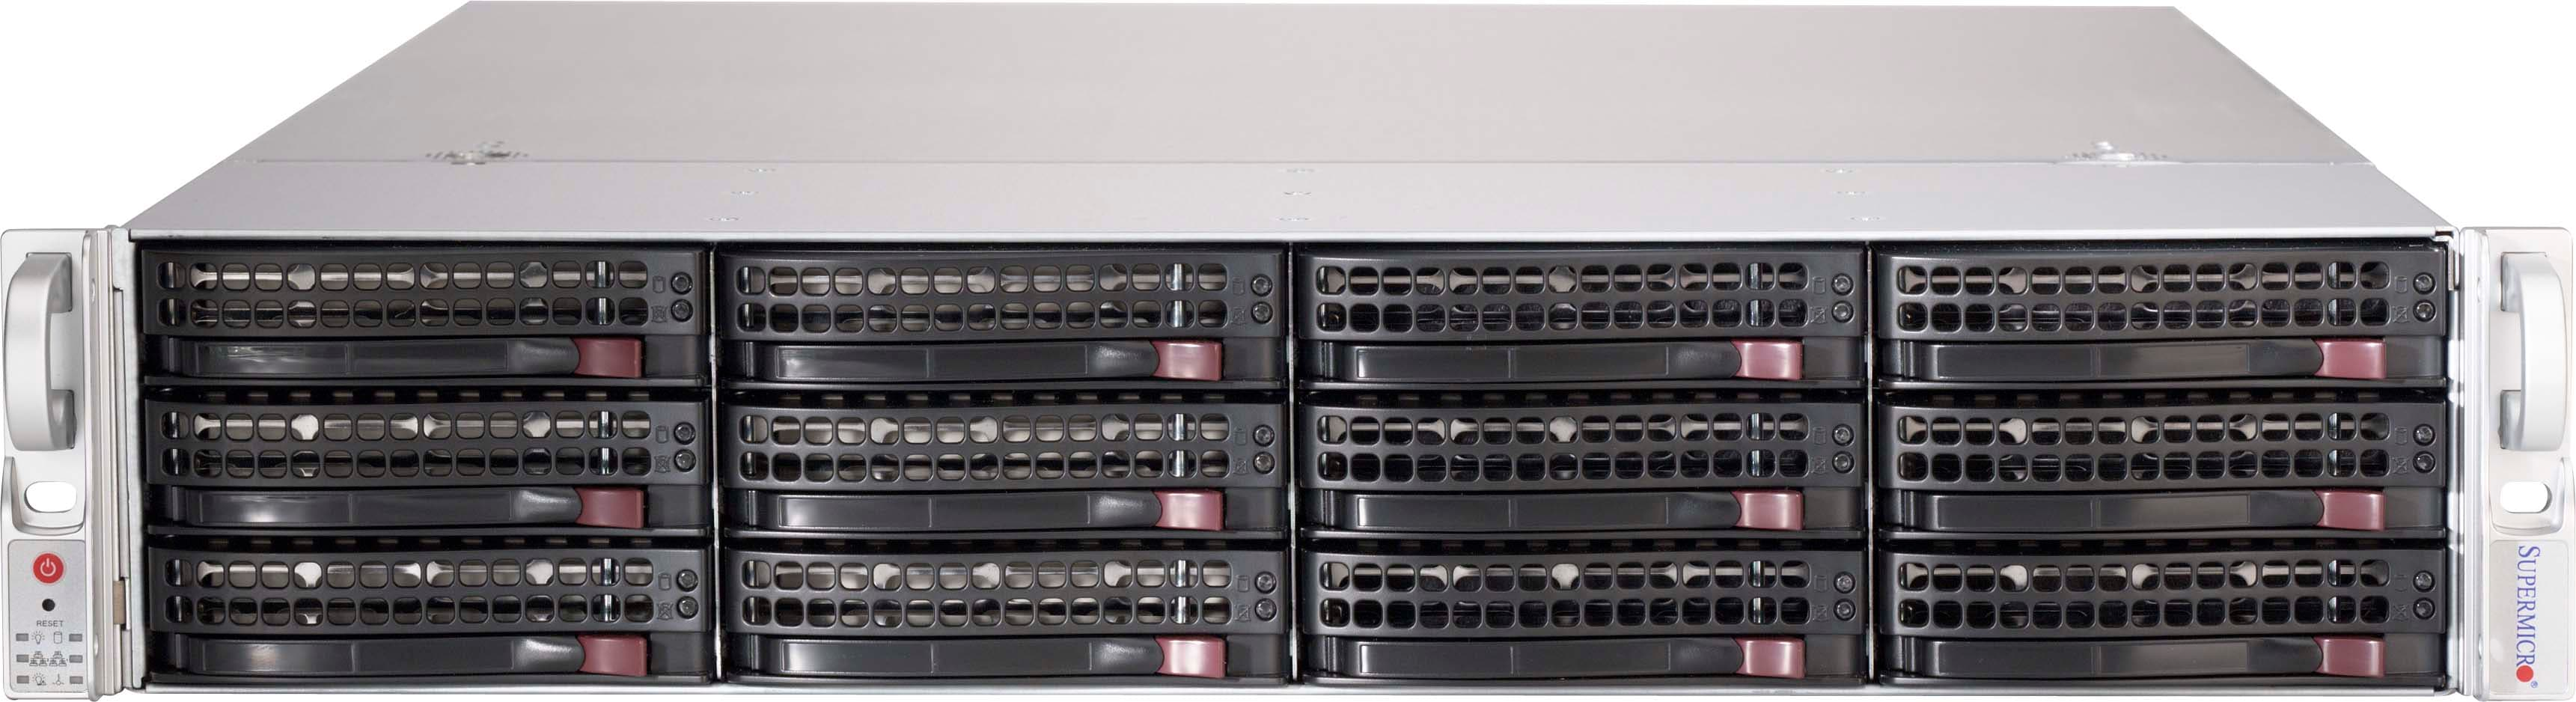 Sc826be2c R741jbod 2u Chassis Products Super Micro